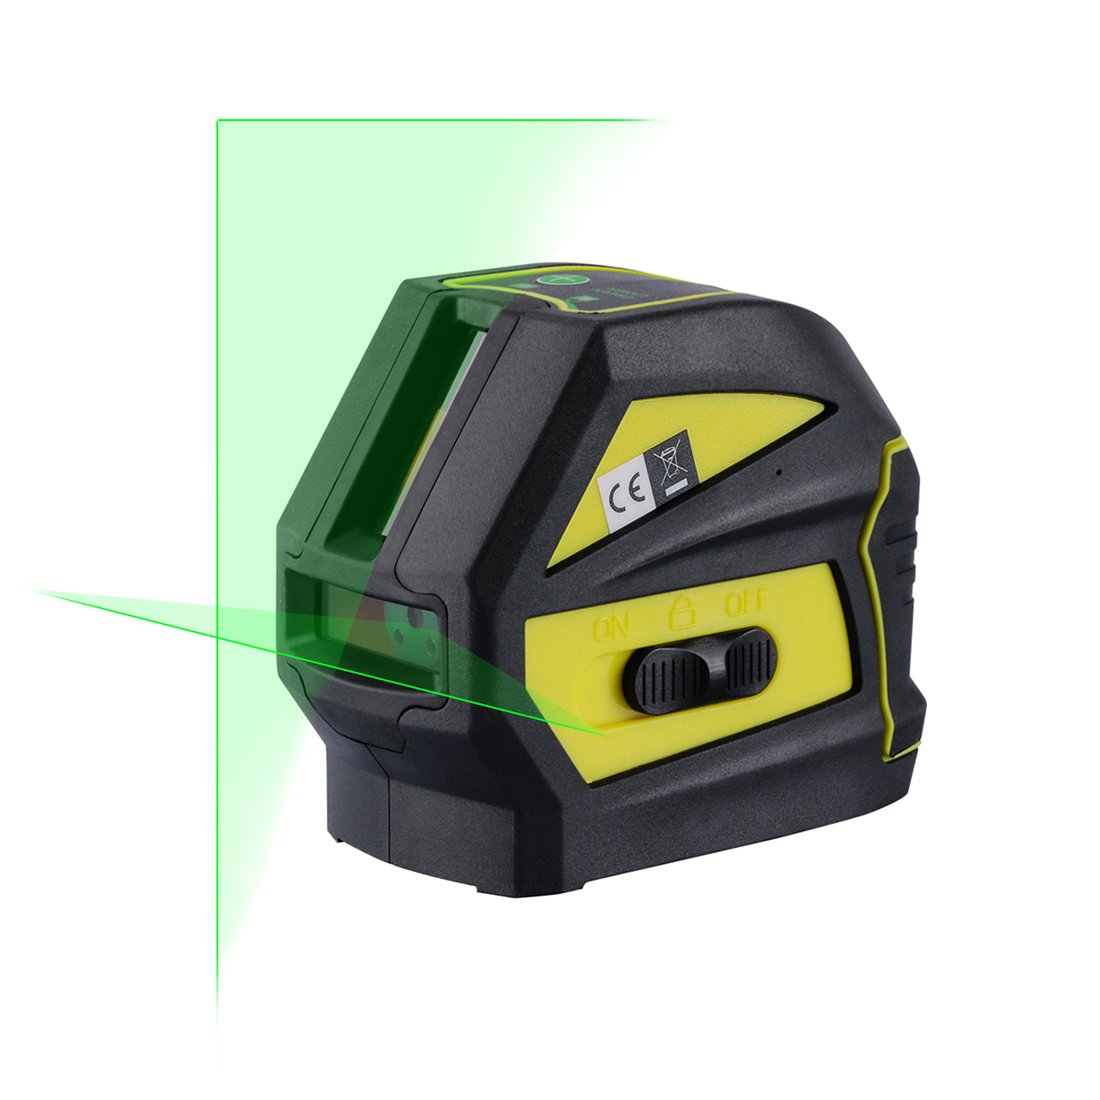 Firecore Professional Green Laser Level Cross Line Self-Leveling (Not include 3AA batteries)